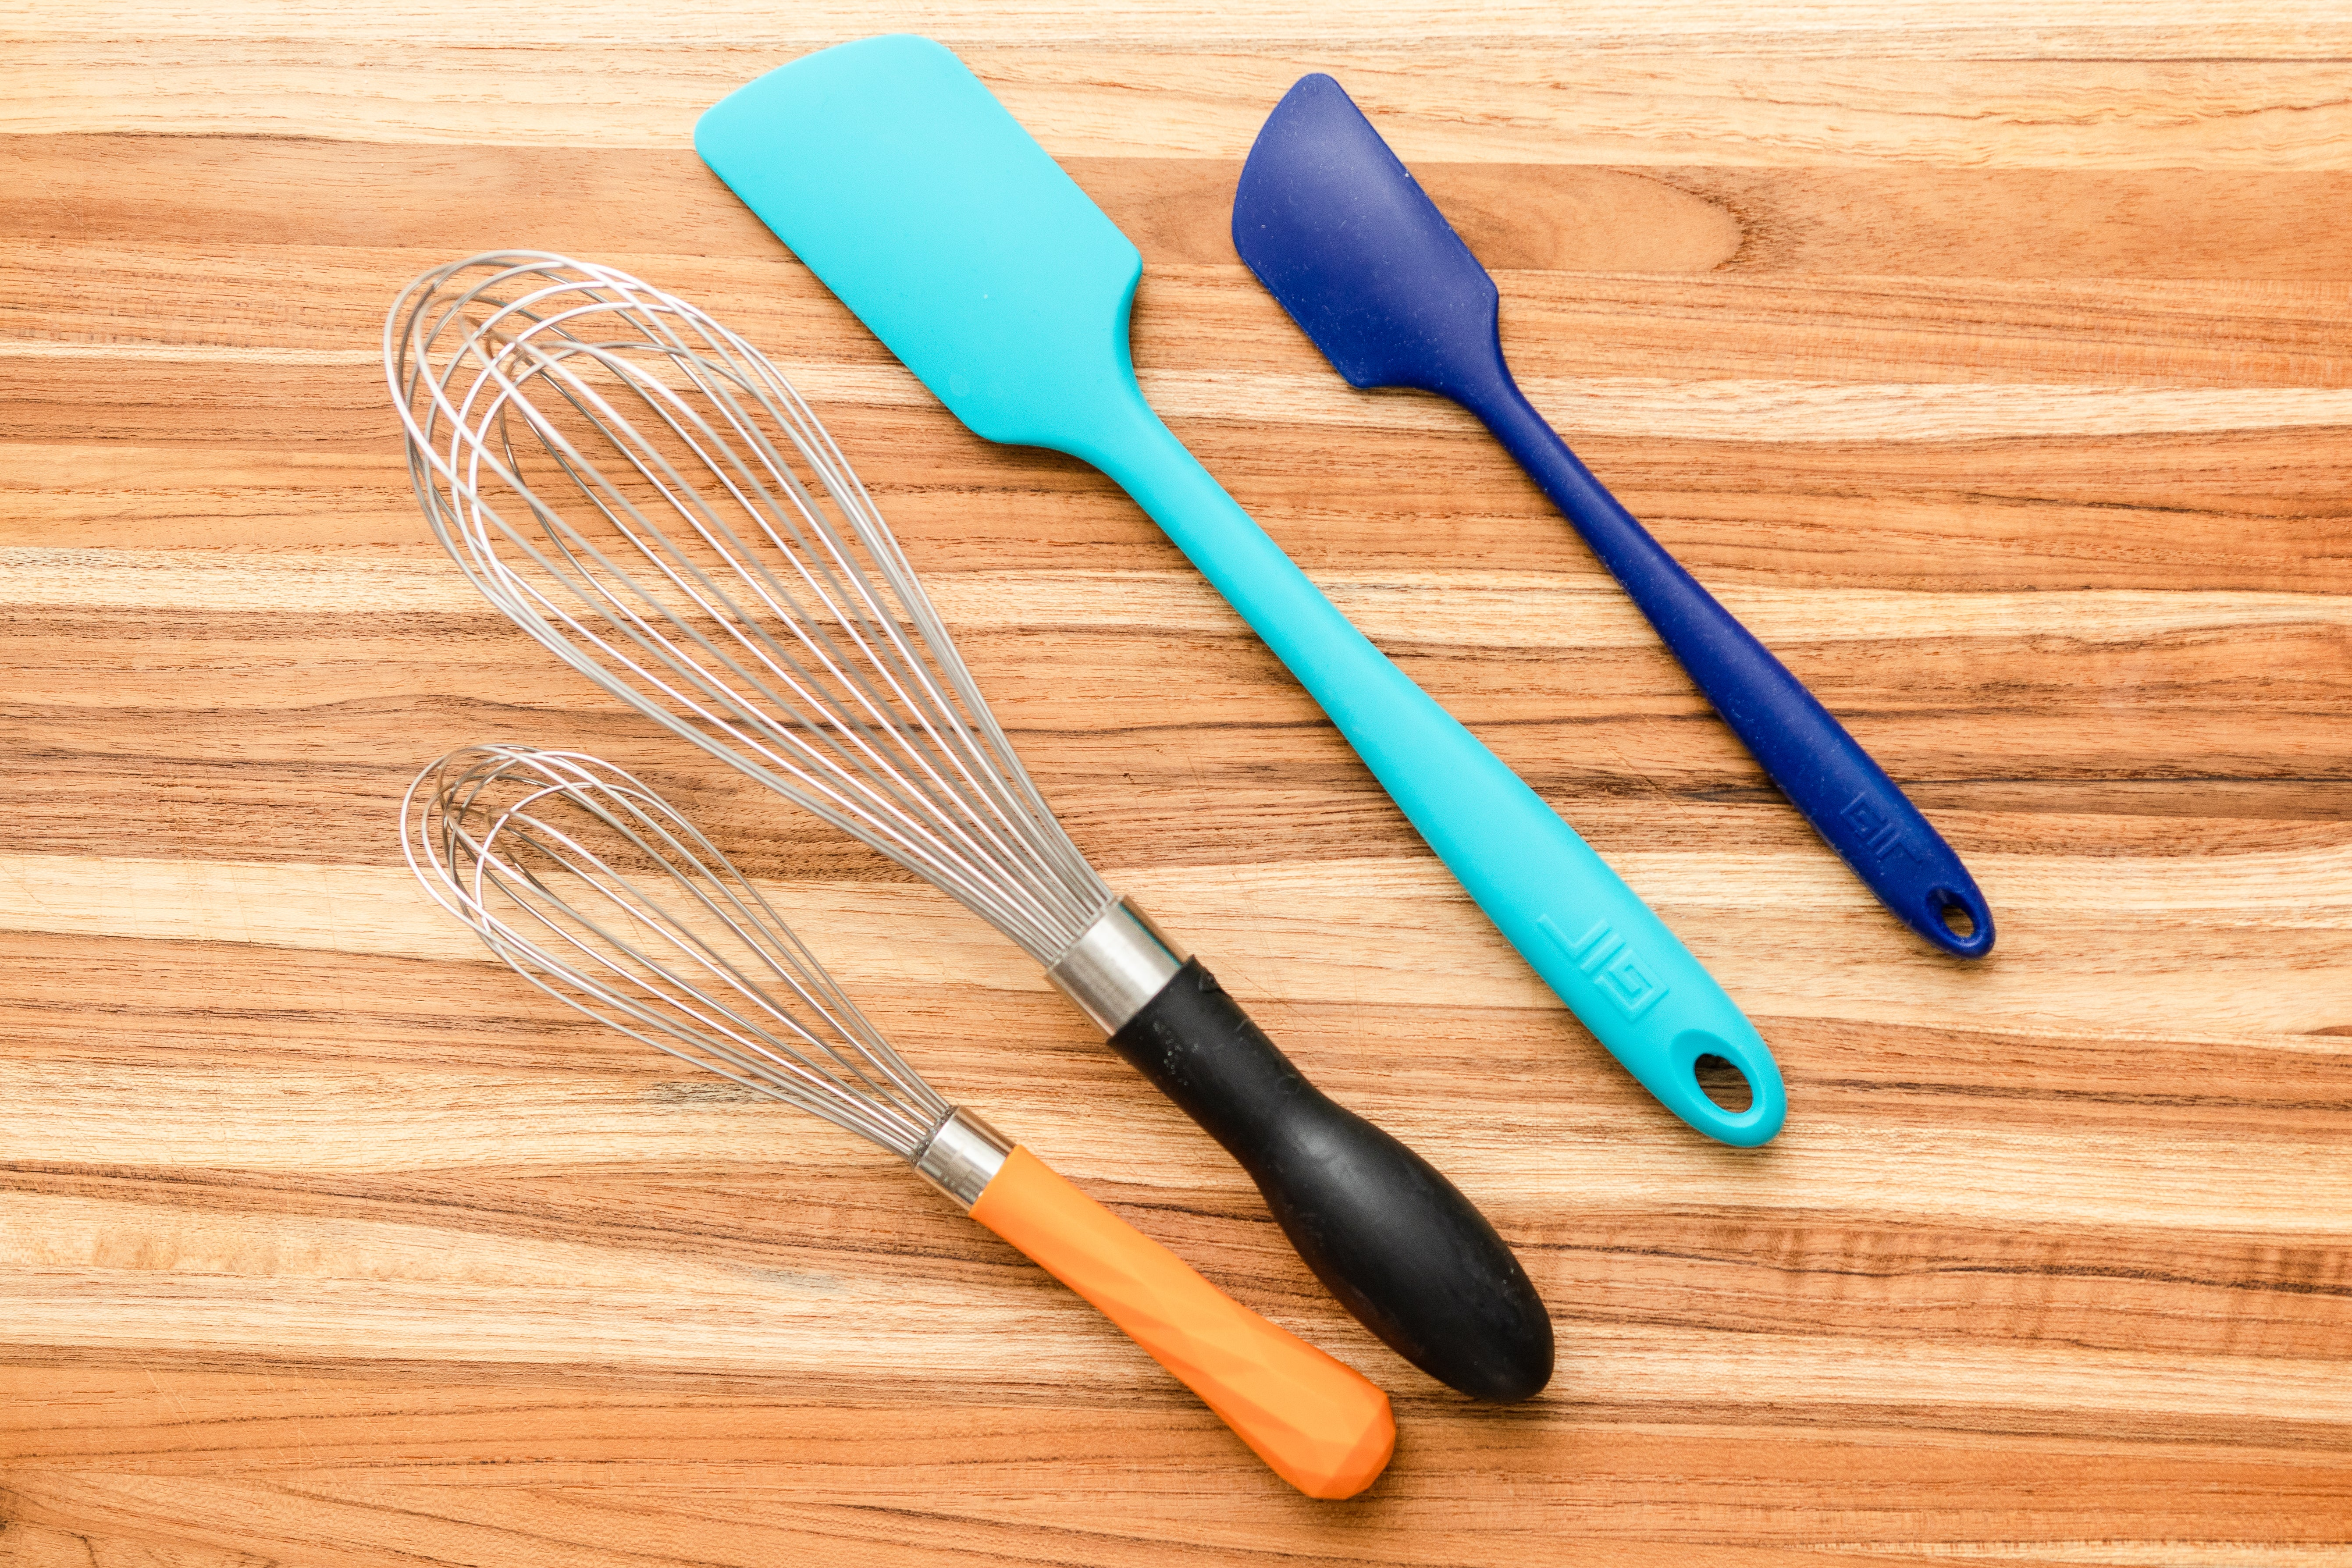 smaller cooking tools